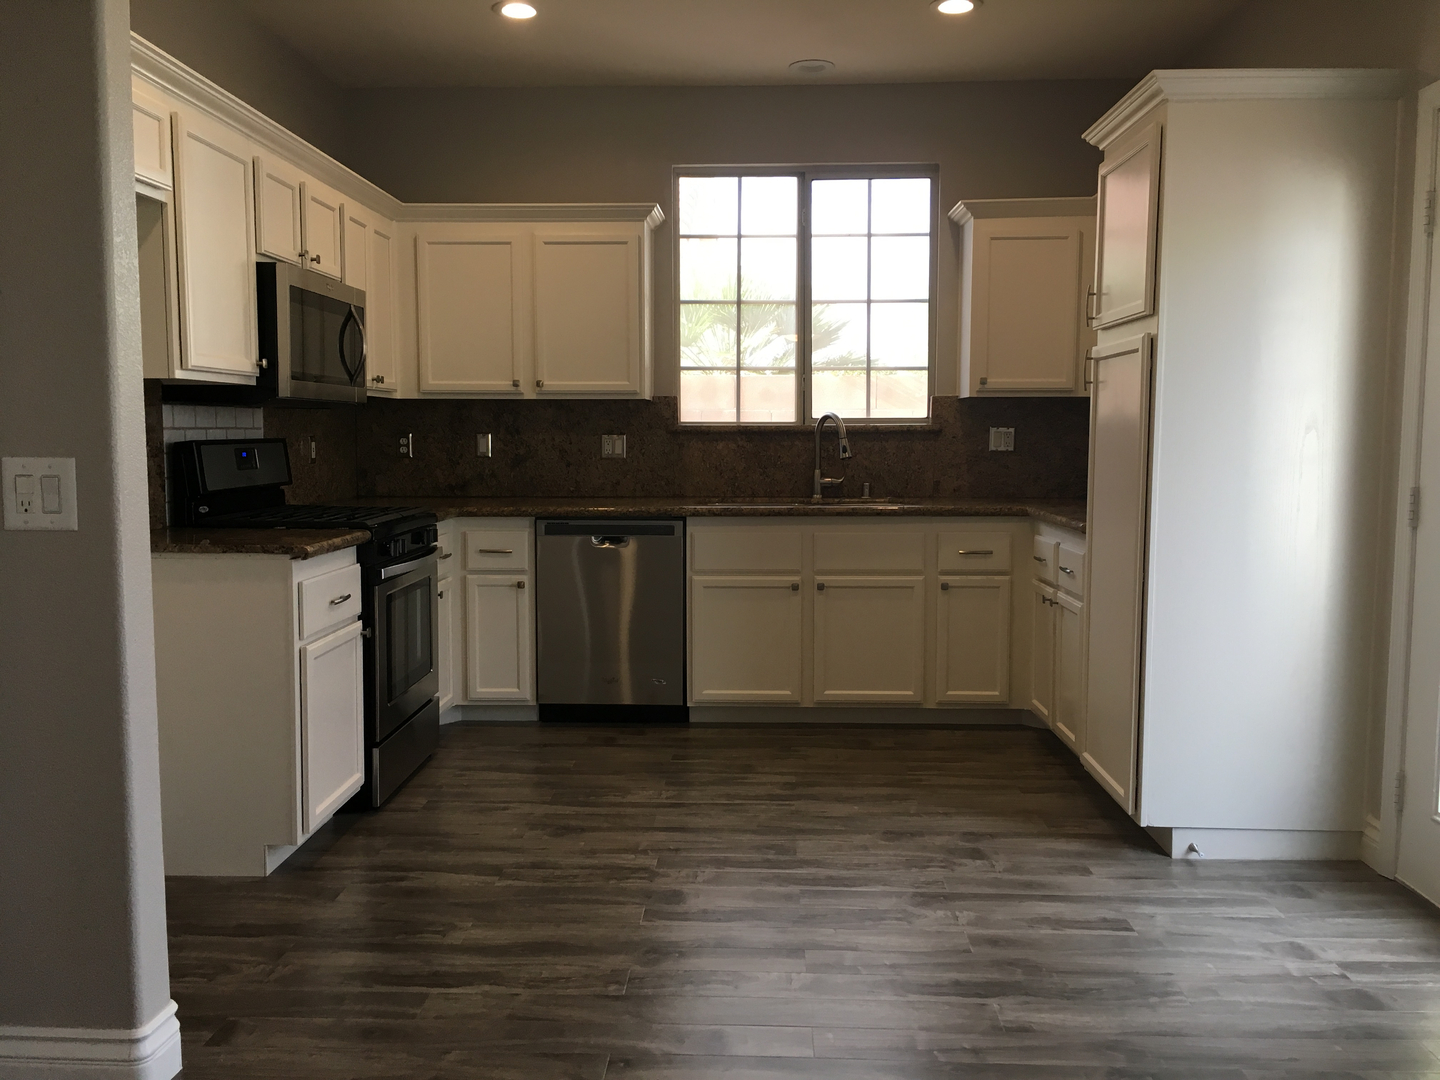 services kitchen remodel las vegas Inexpensive bathroom remodel new granite installed and cabinet refinished before